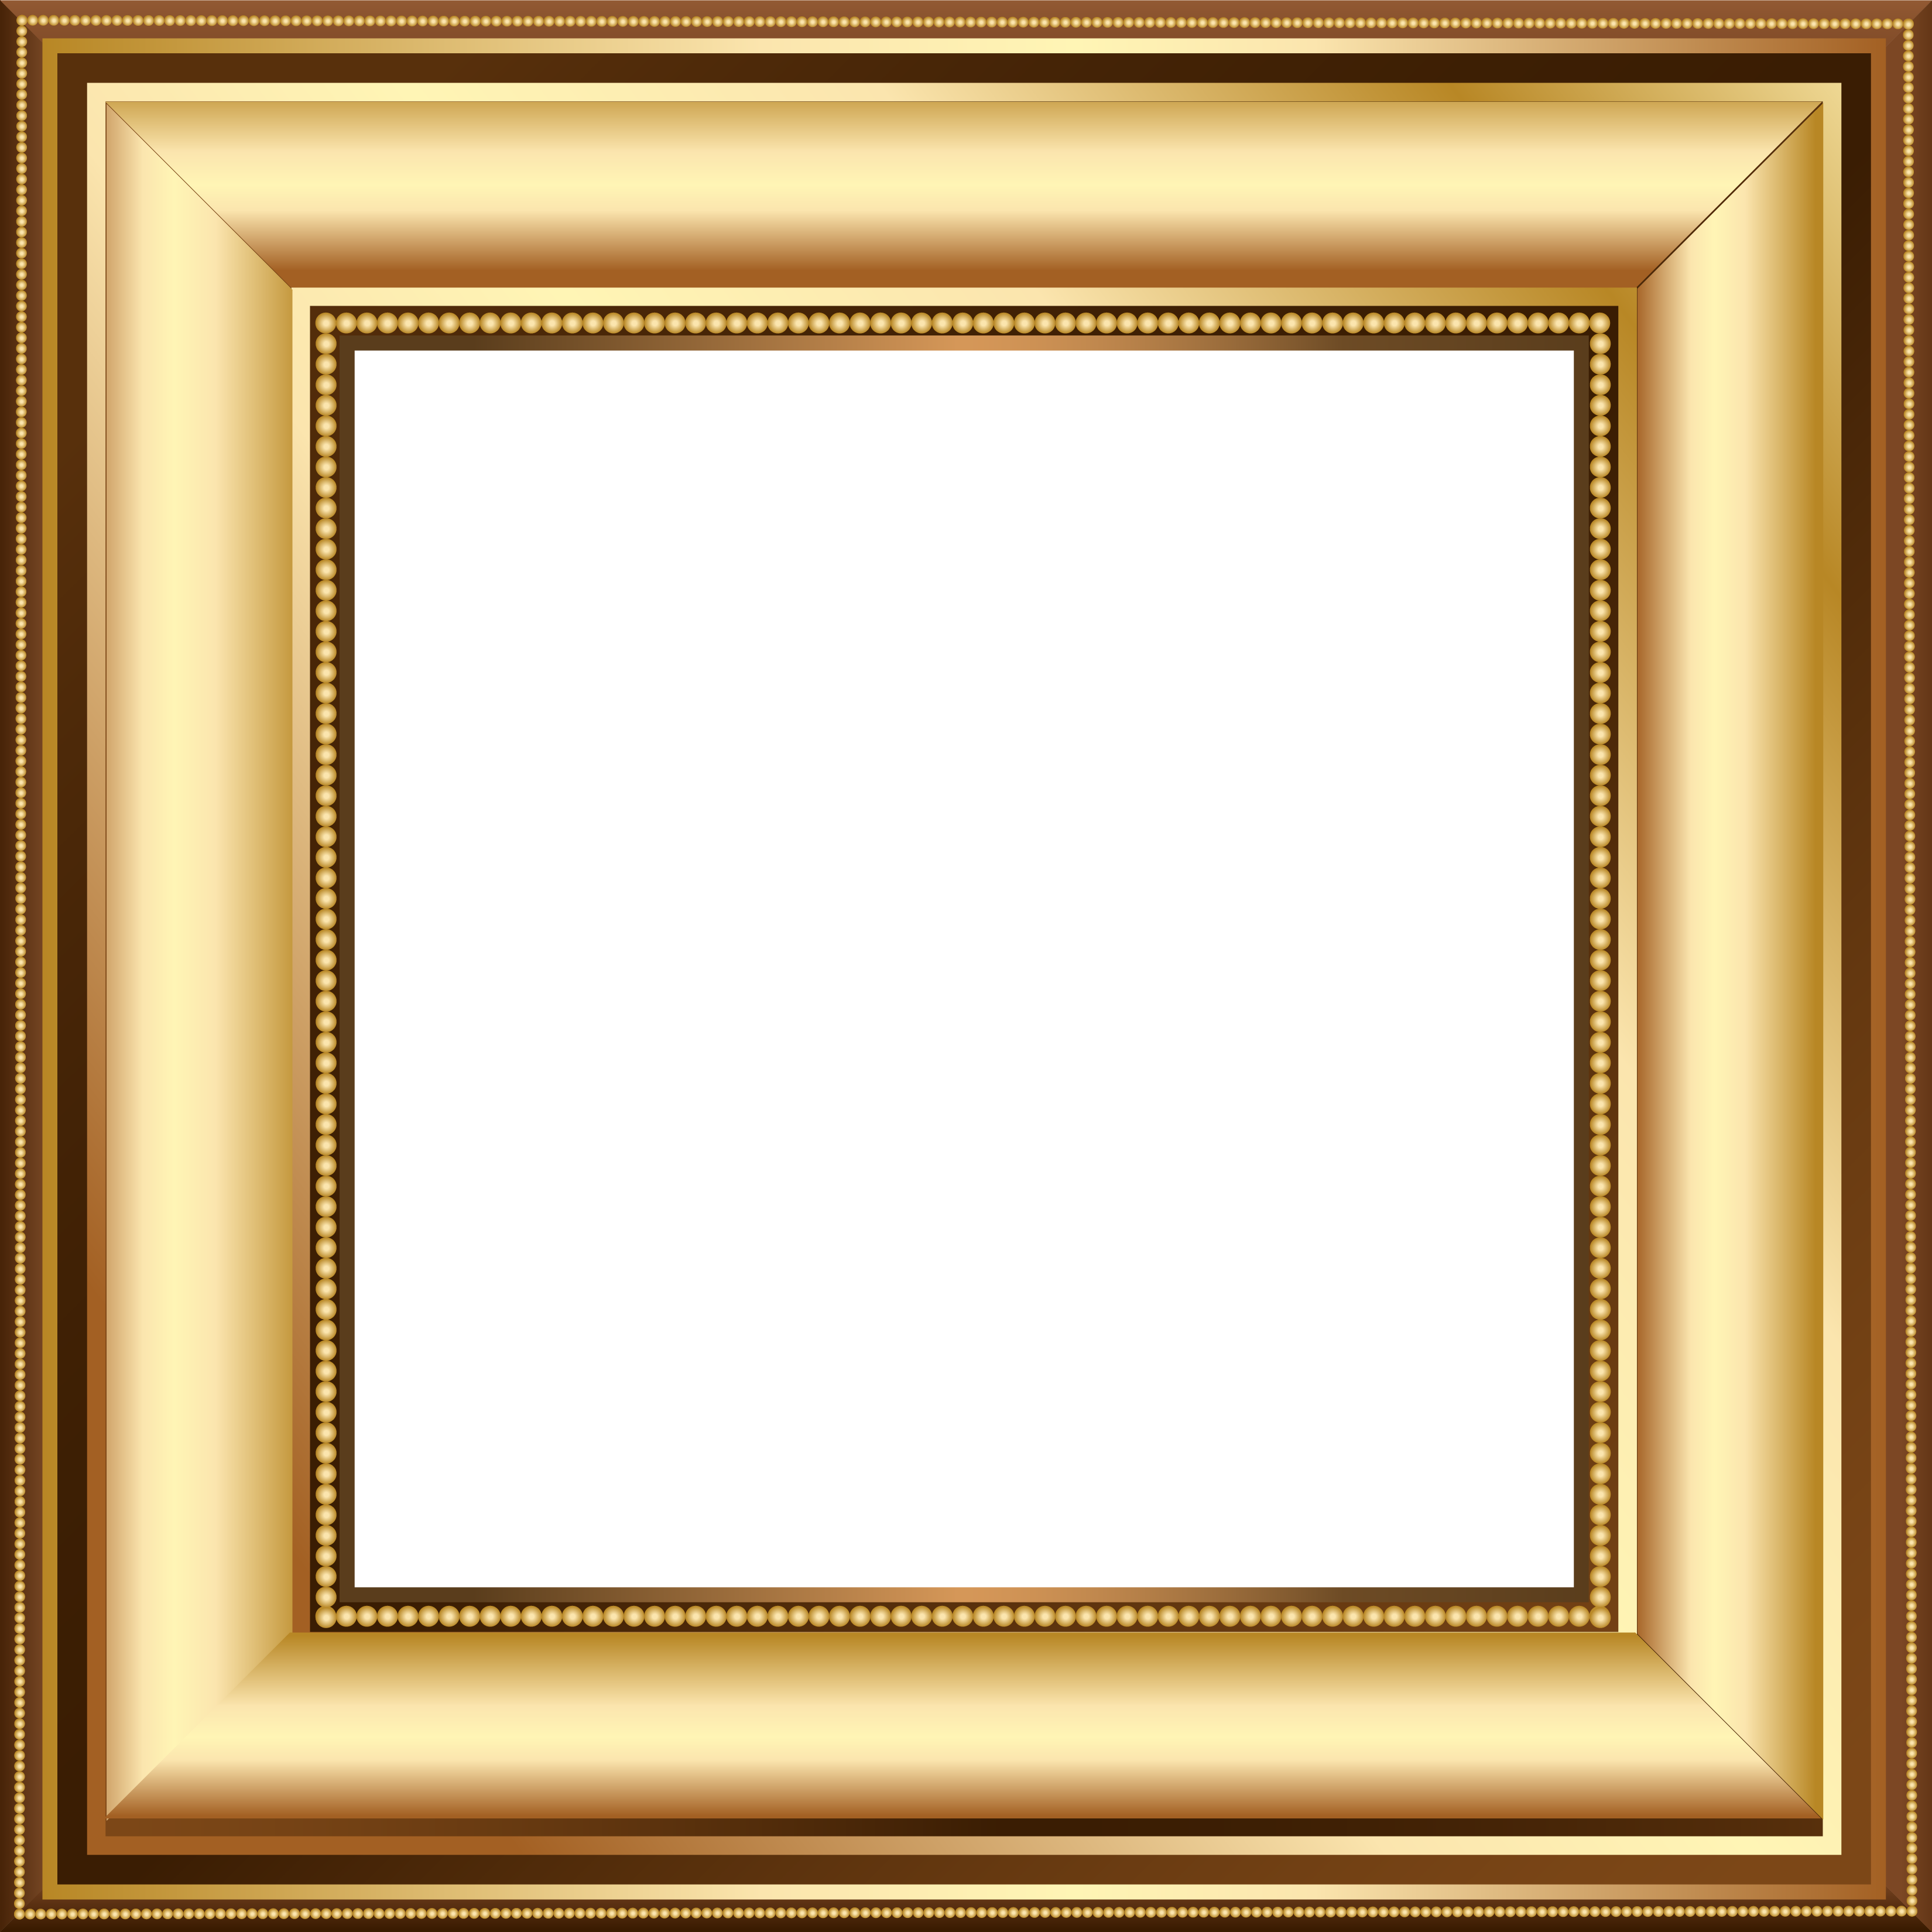 Picture frame clipart transparent background picture free library Gold and Brown Transparent Photo Frame | Κορνίζες | Frame ... picture free library